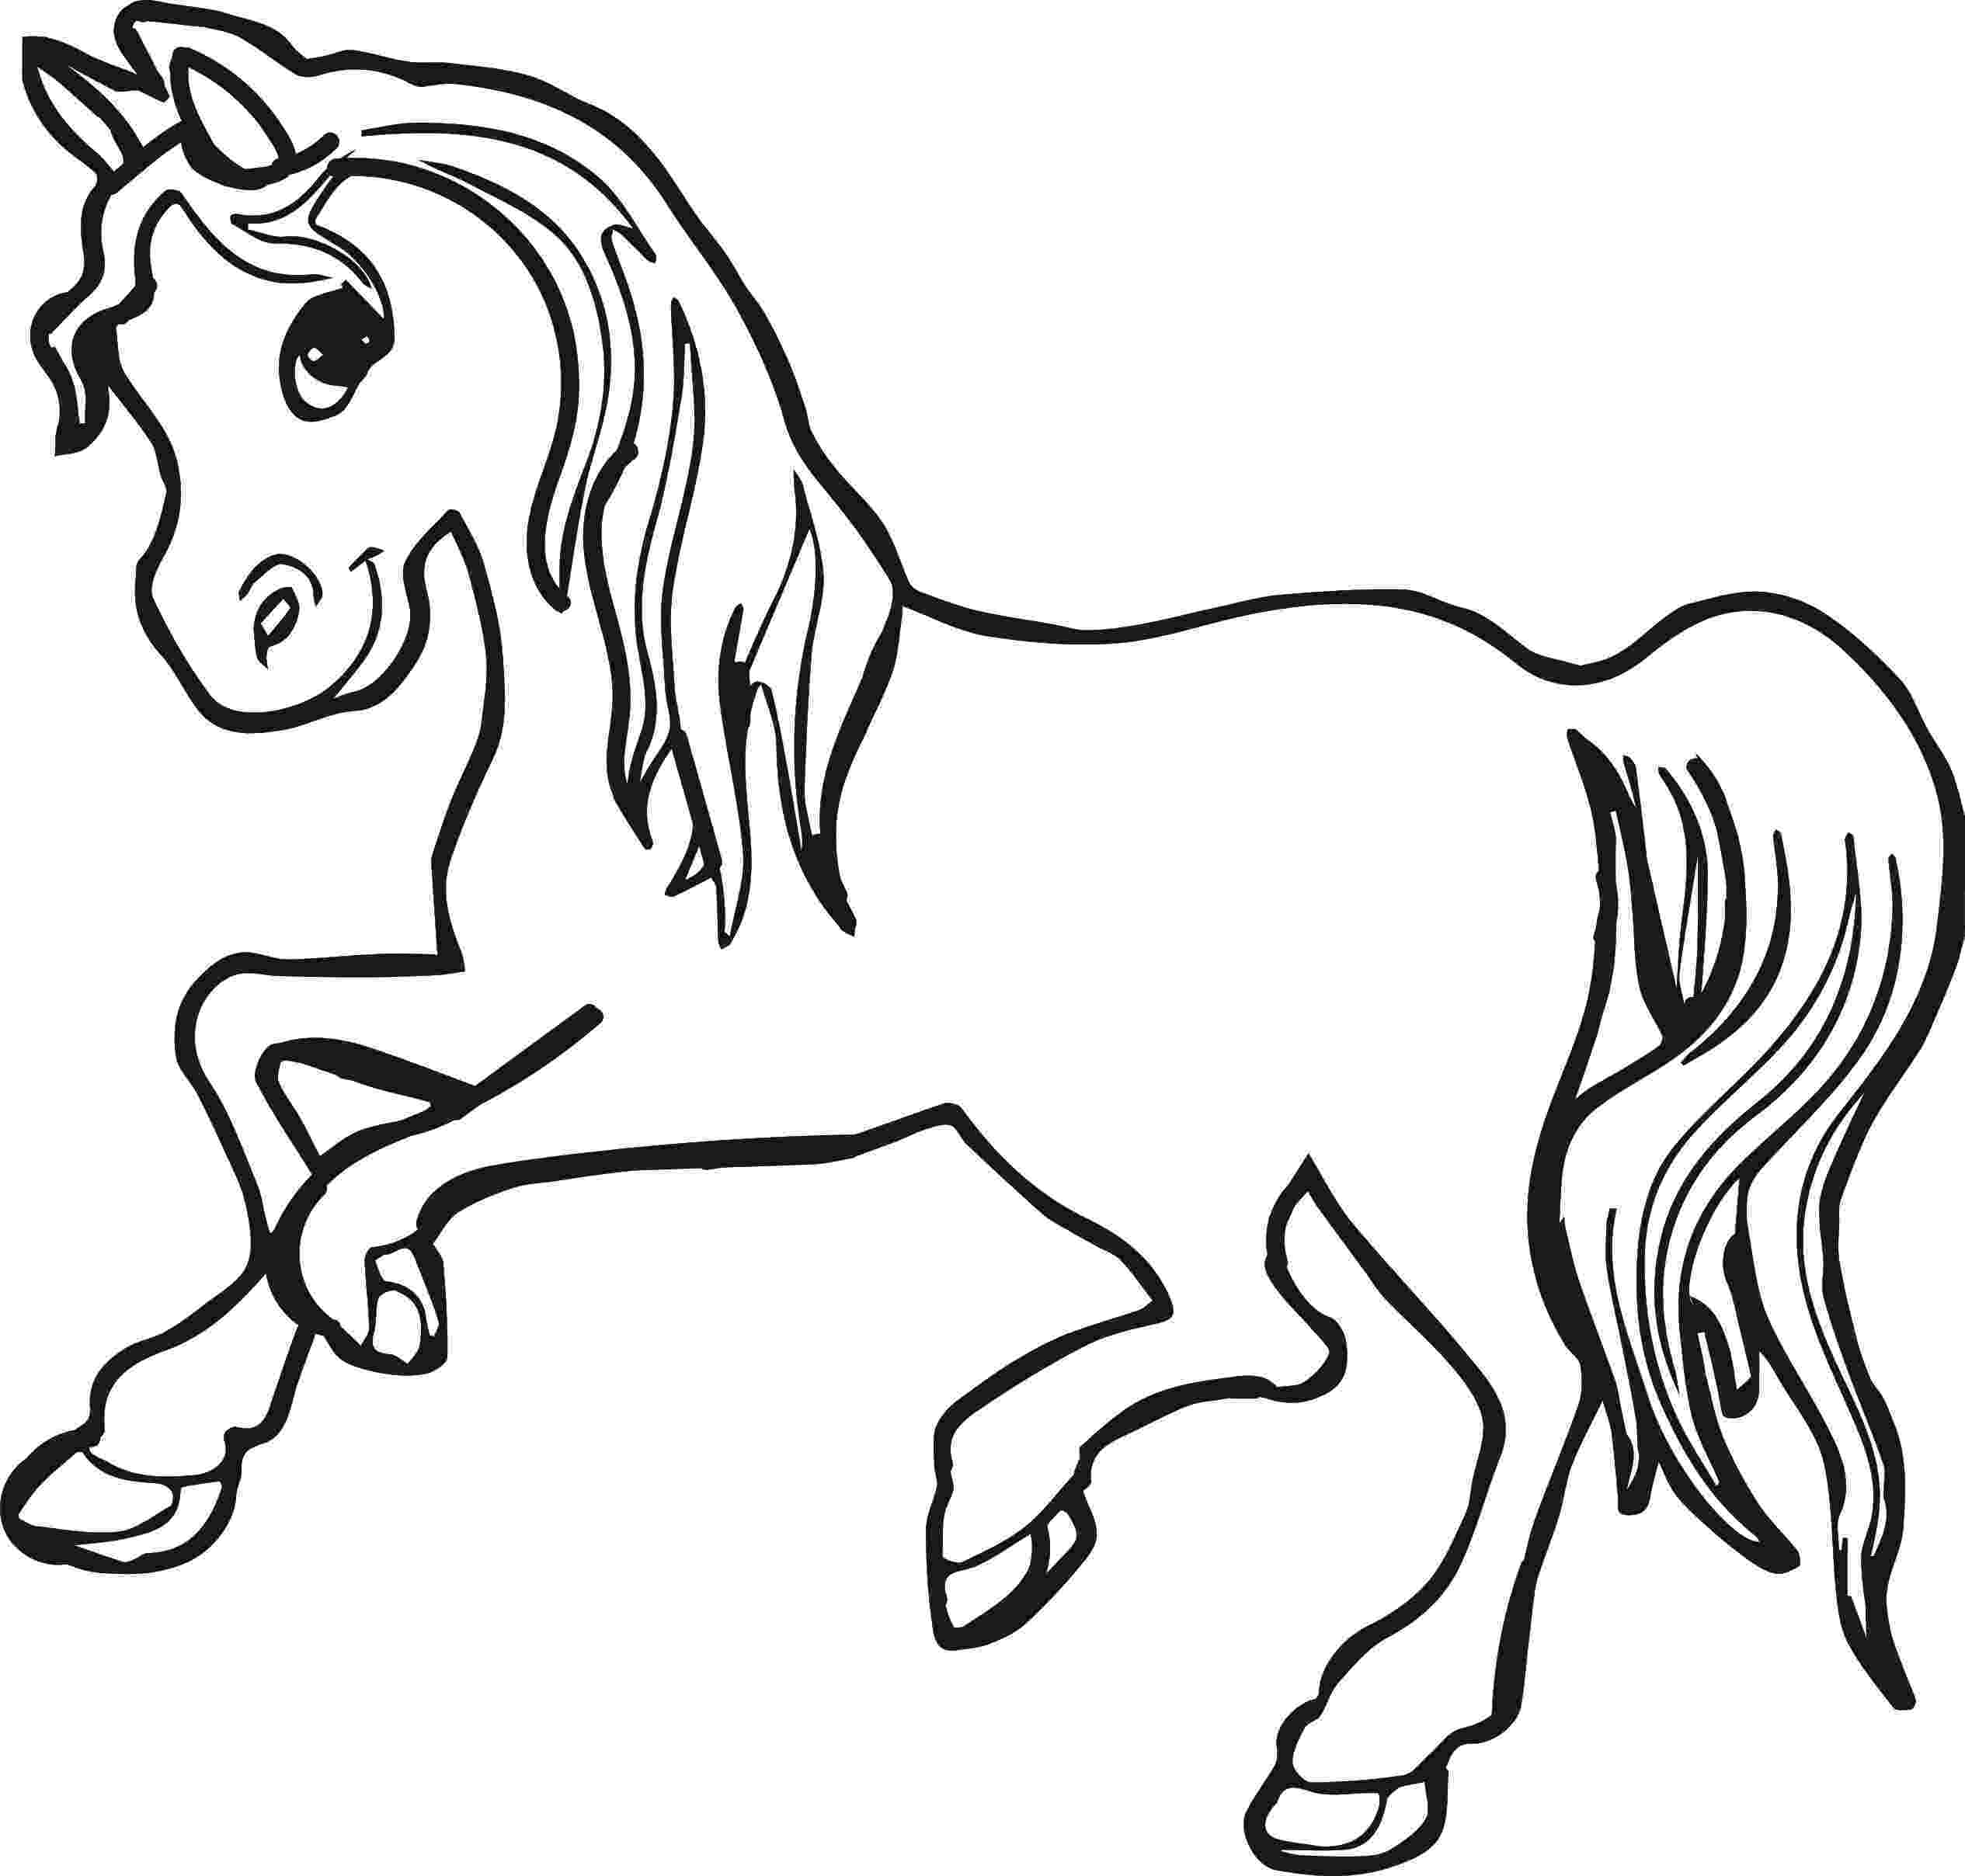 pictures of horses to color and print 41 free printable coloring pages of horses flying horse pictures horses print of to and color